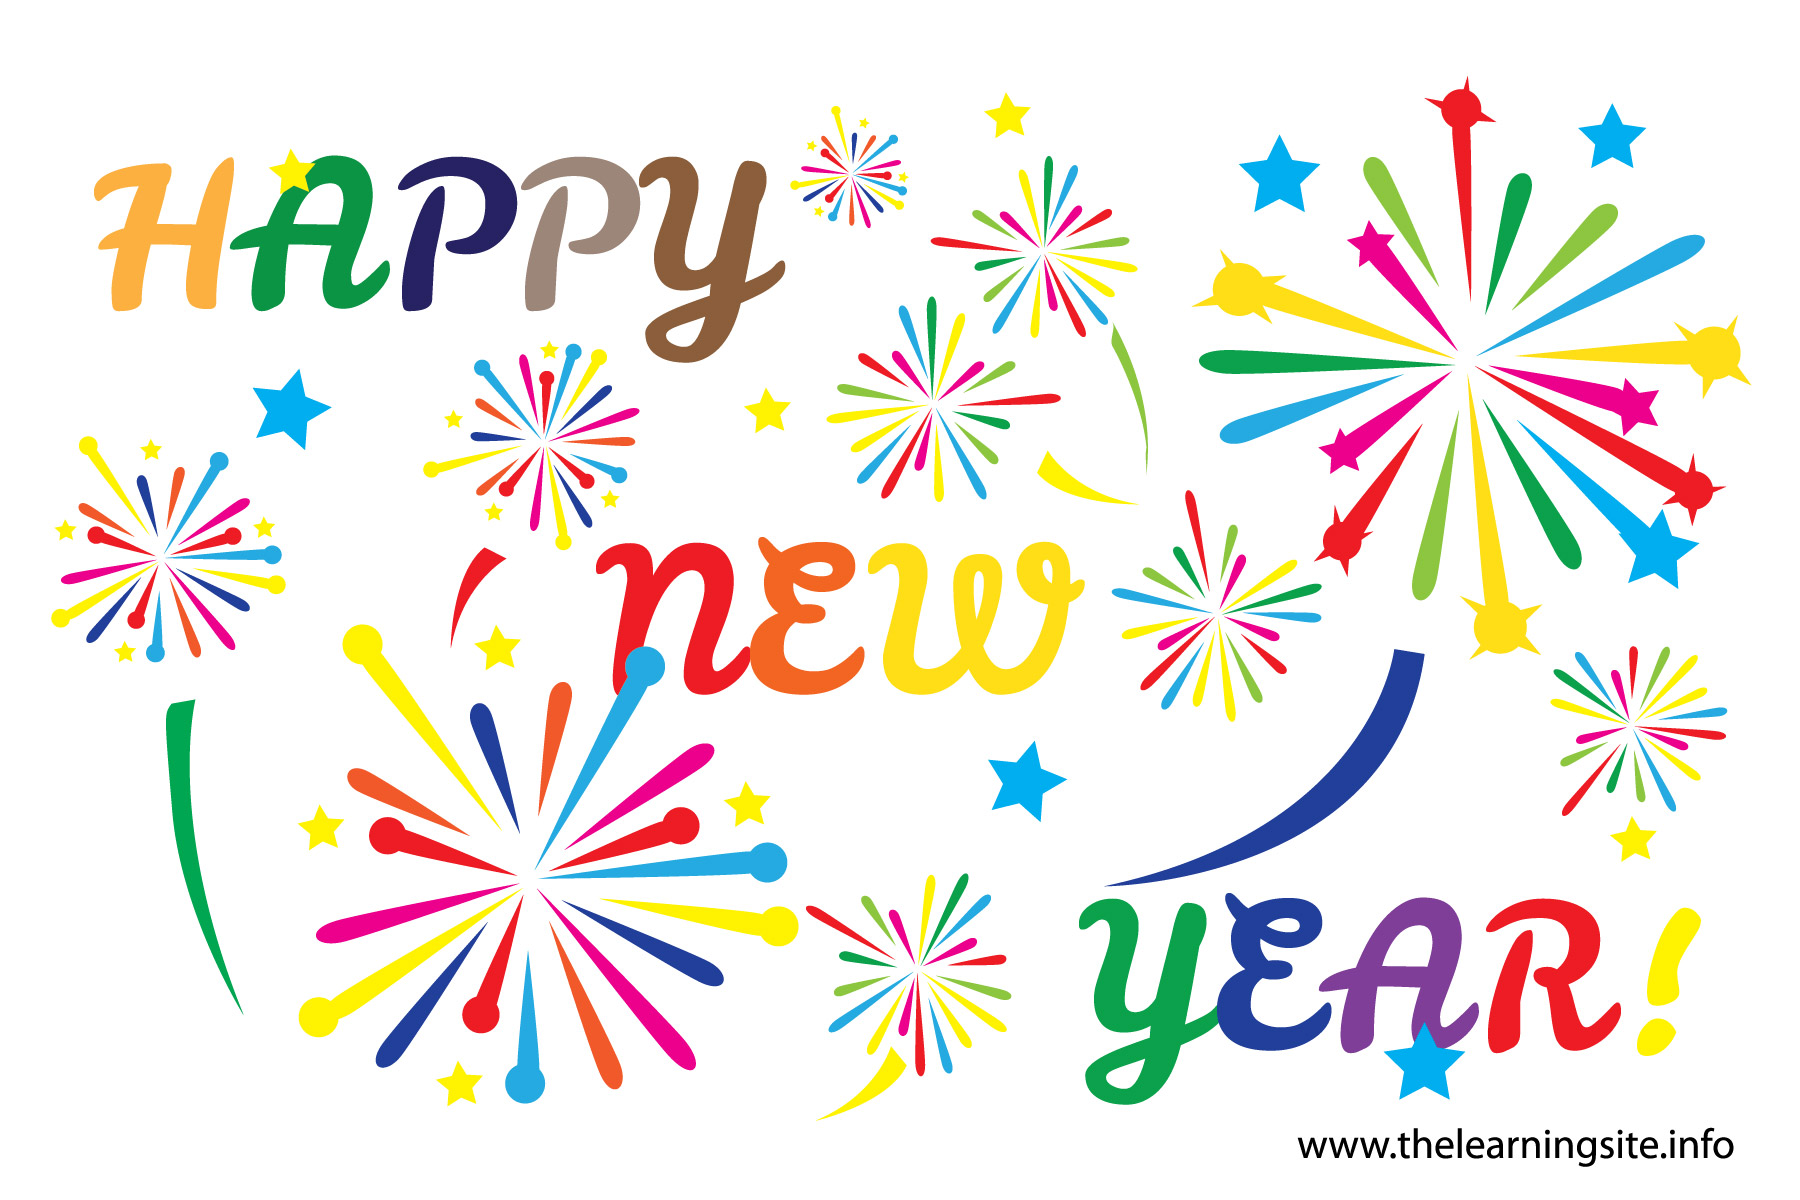 Happy New Year Clipart Free For 2015-Happy New Year Clipart Free For 2015-6